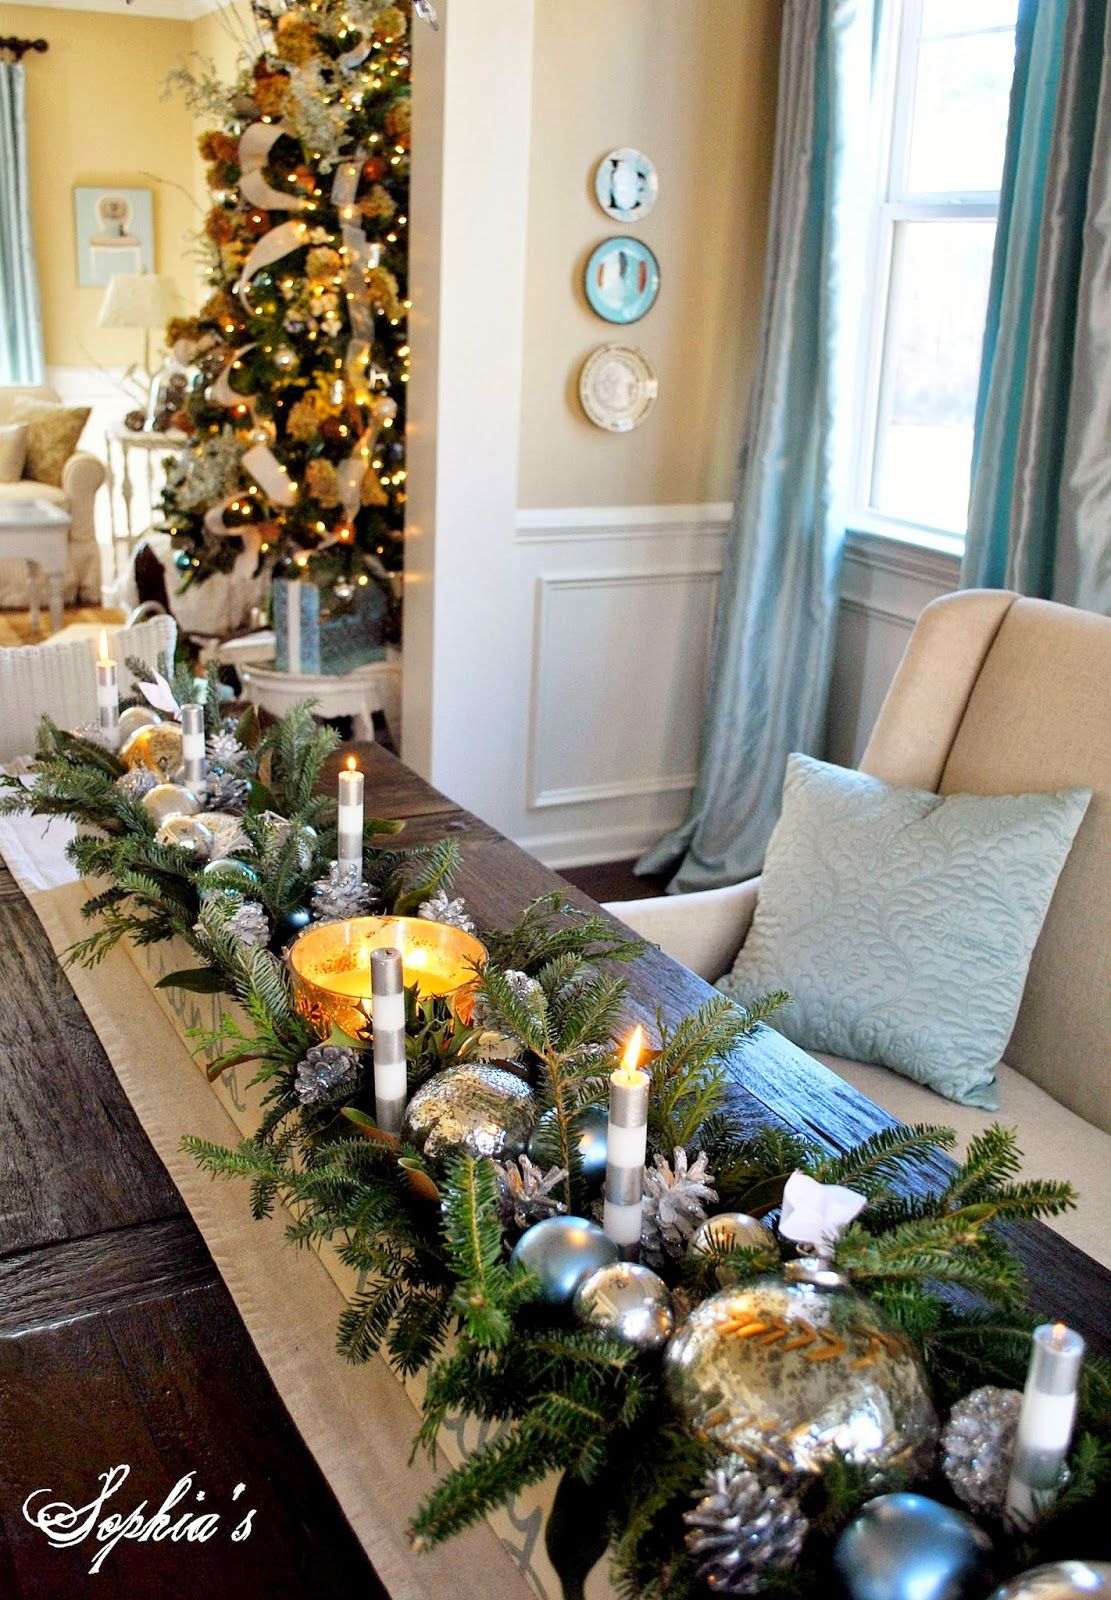 Sophia's: Decorating with Natural Elements...Highlights of ...